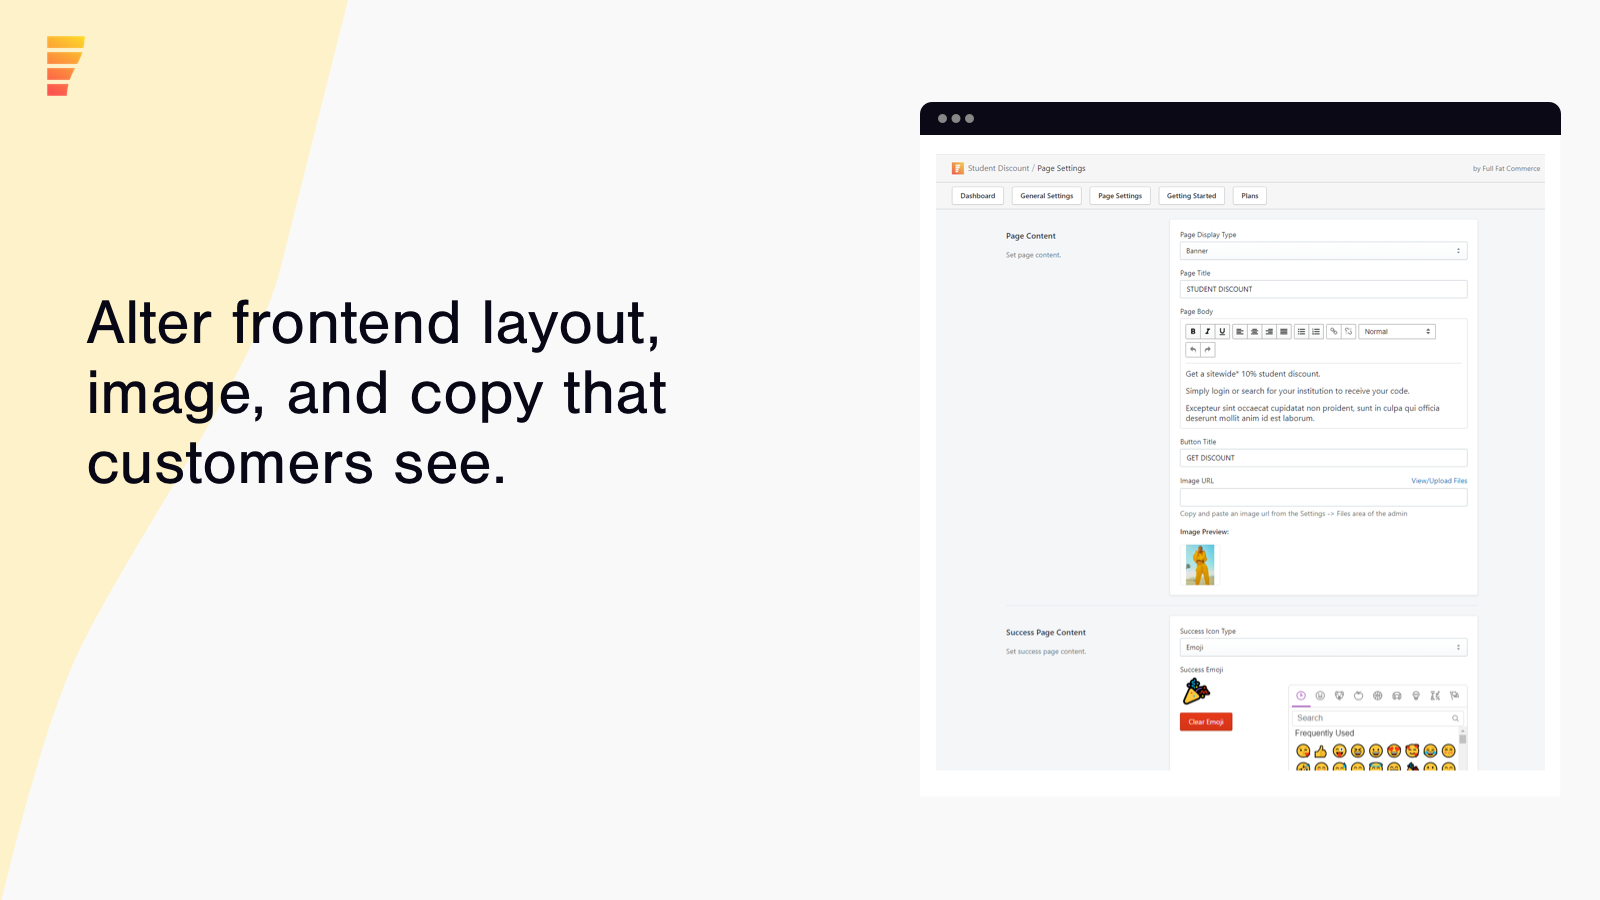 Alter frontend layout, image, and copy that customers see